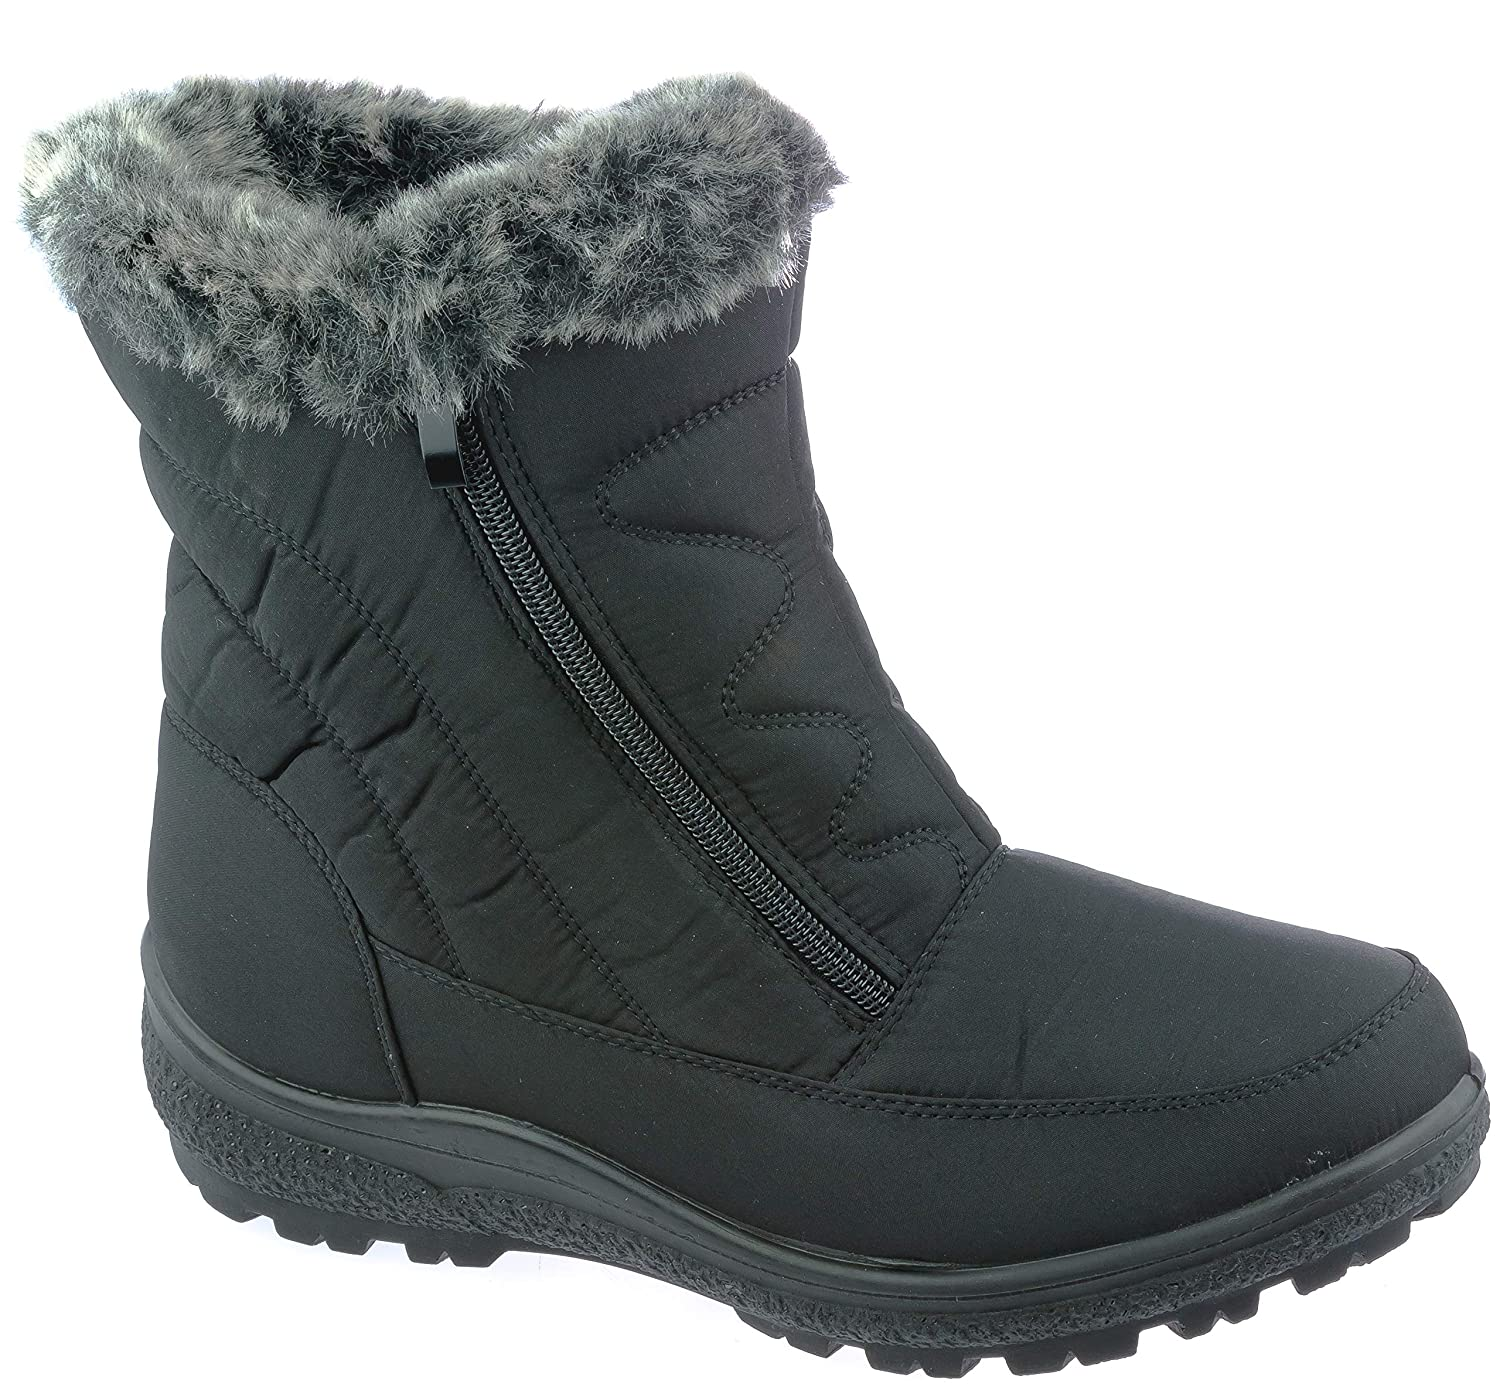 wolfsburg7 Womens Winter Boots Mid-Cap Fur Lining Cold-Weather Shoes